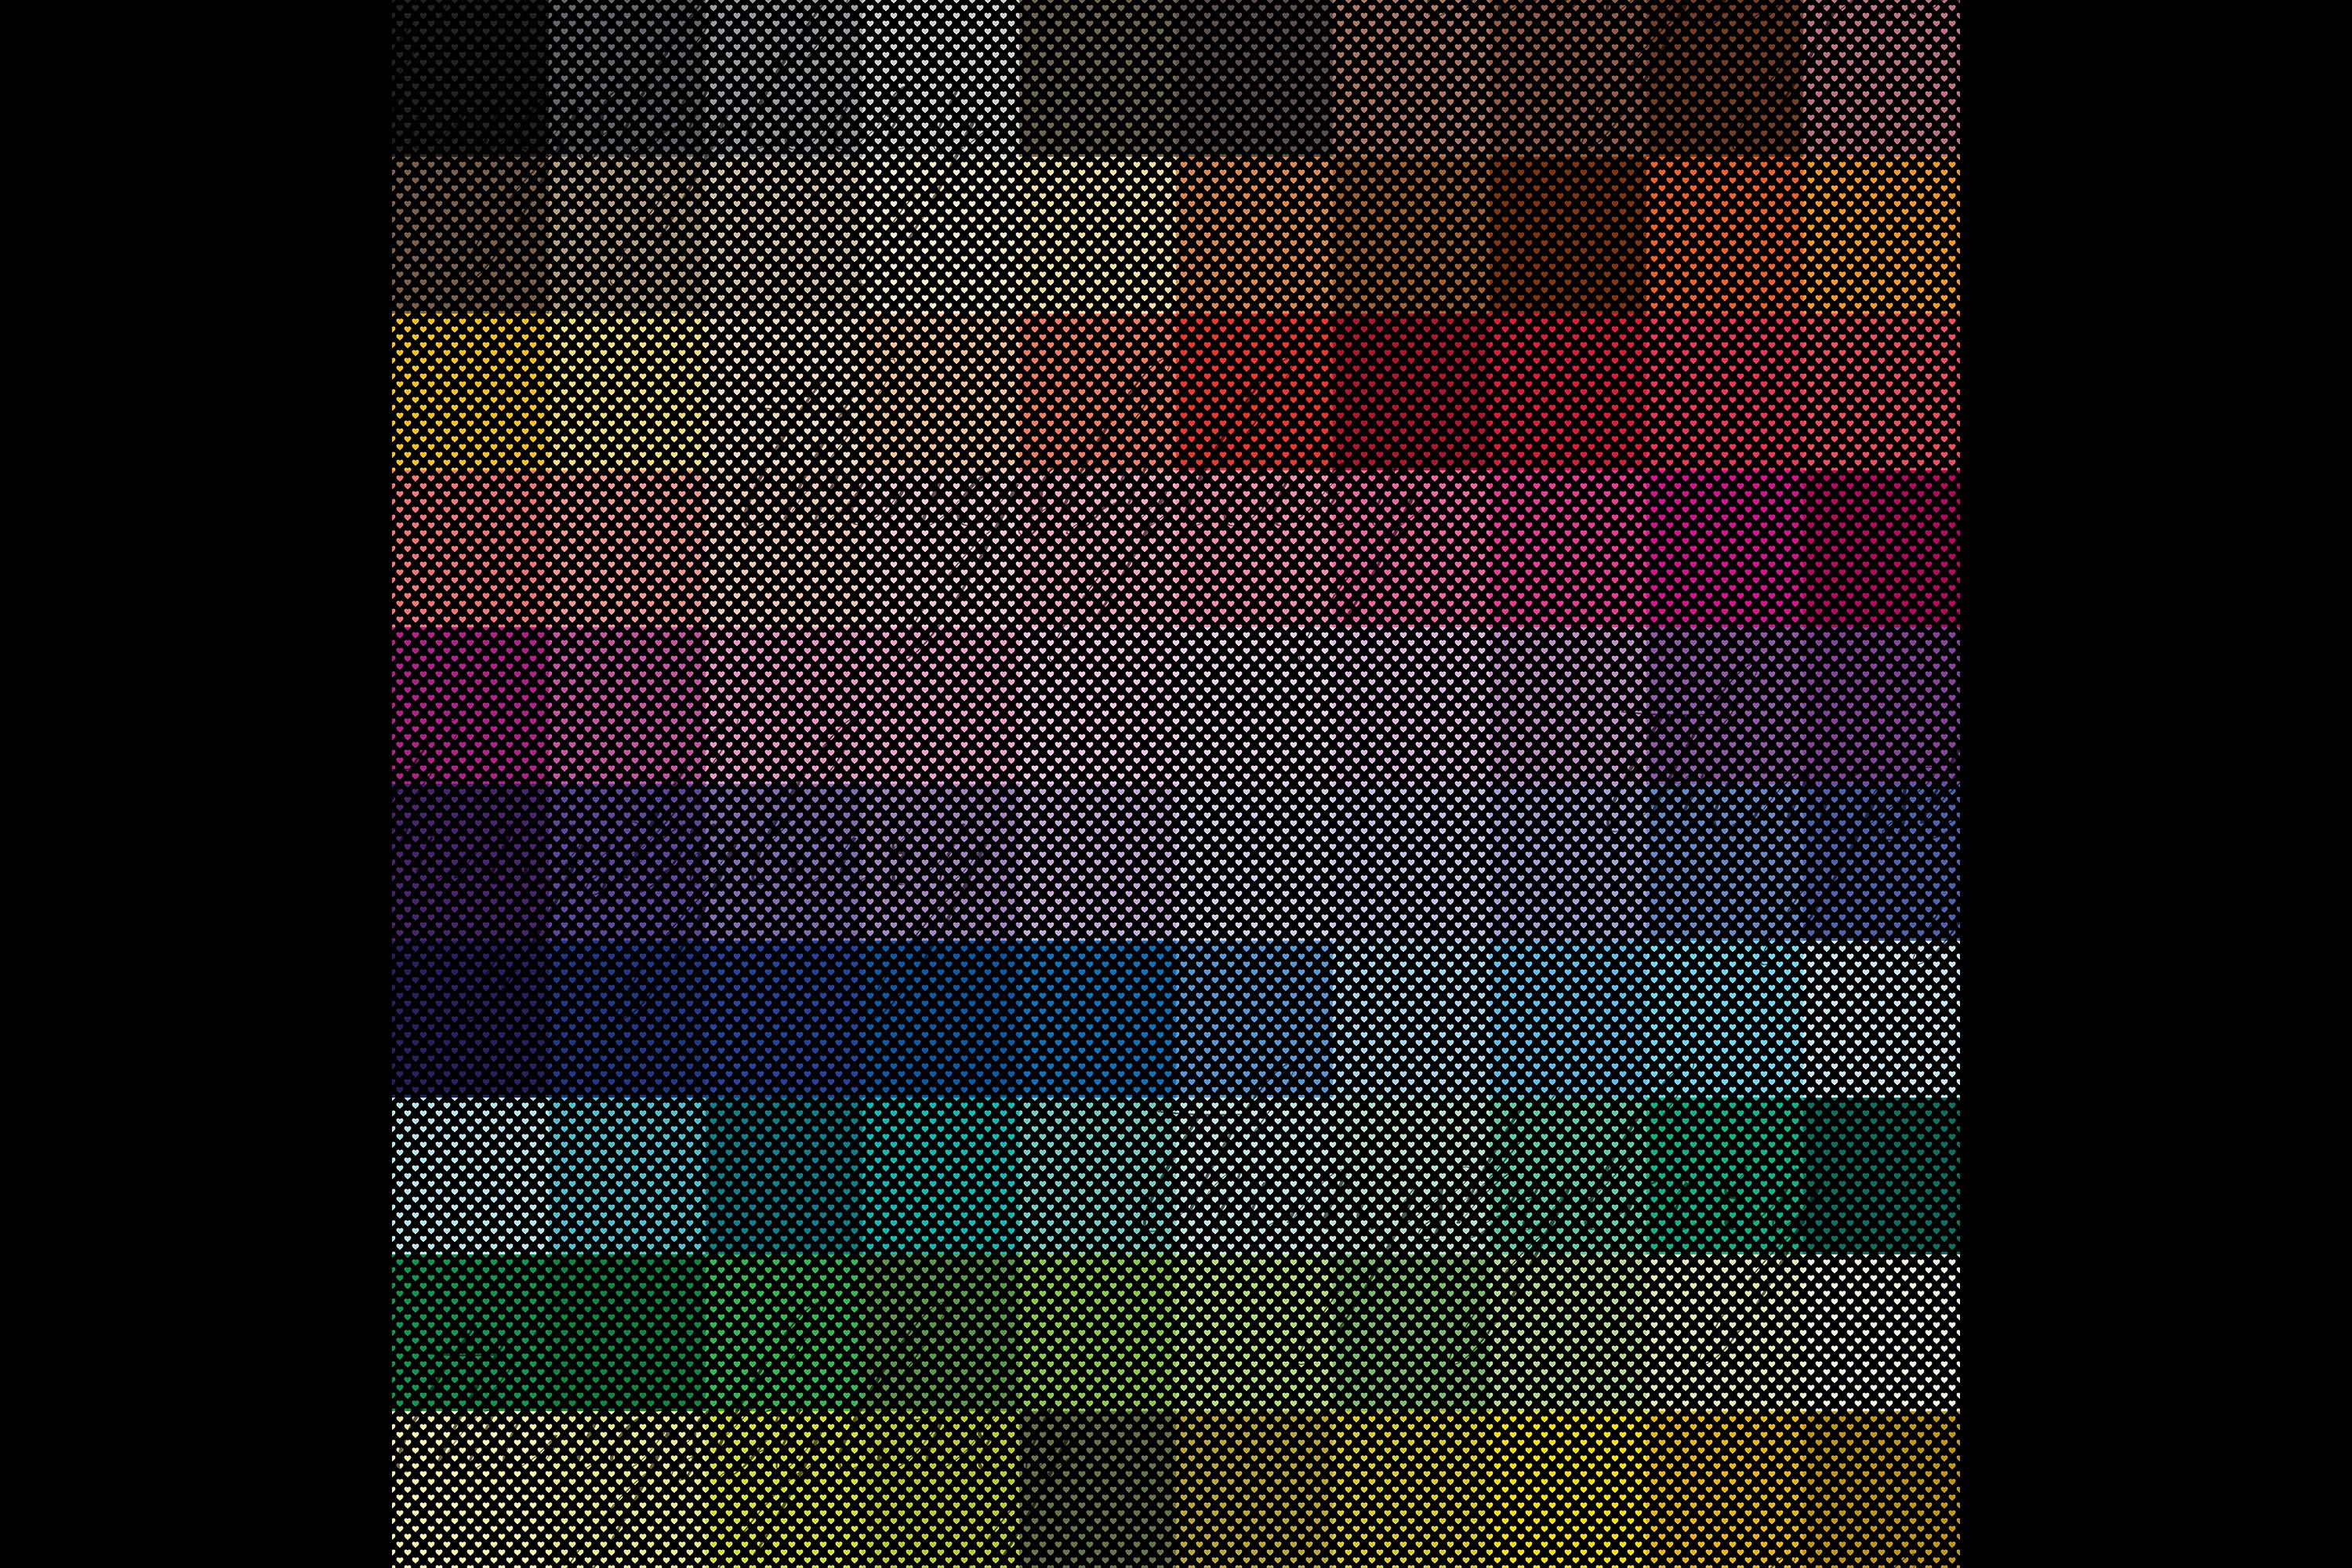 100 Seamless Black and Solid Heart Valentine Digital Papers example image 10